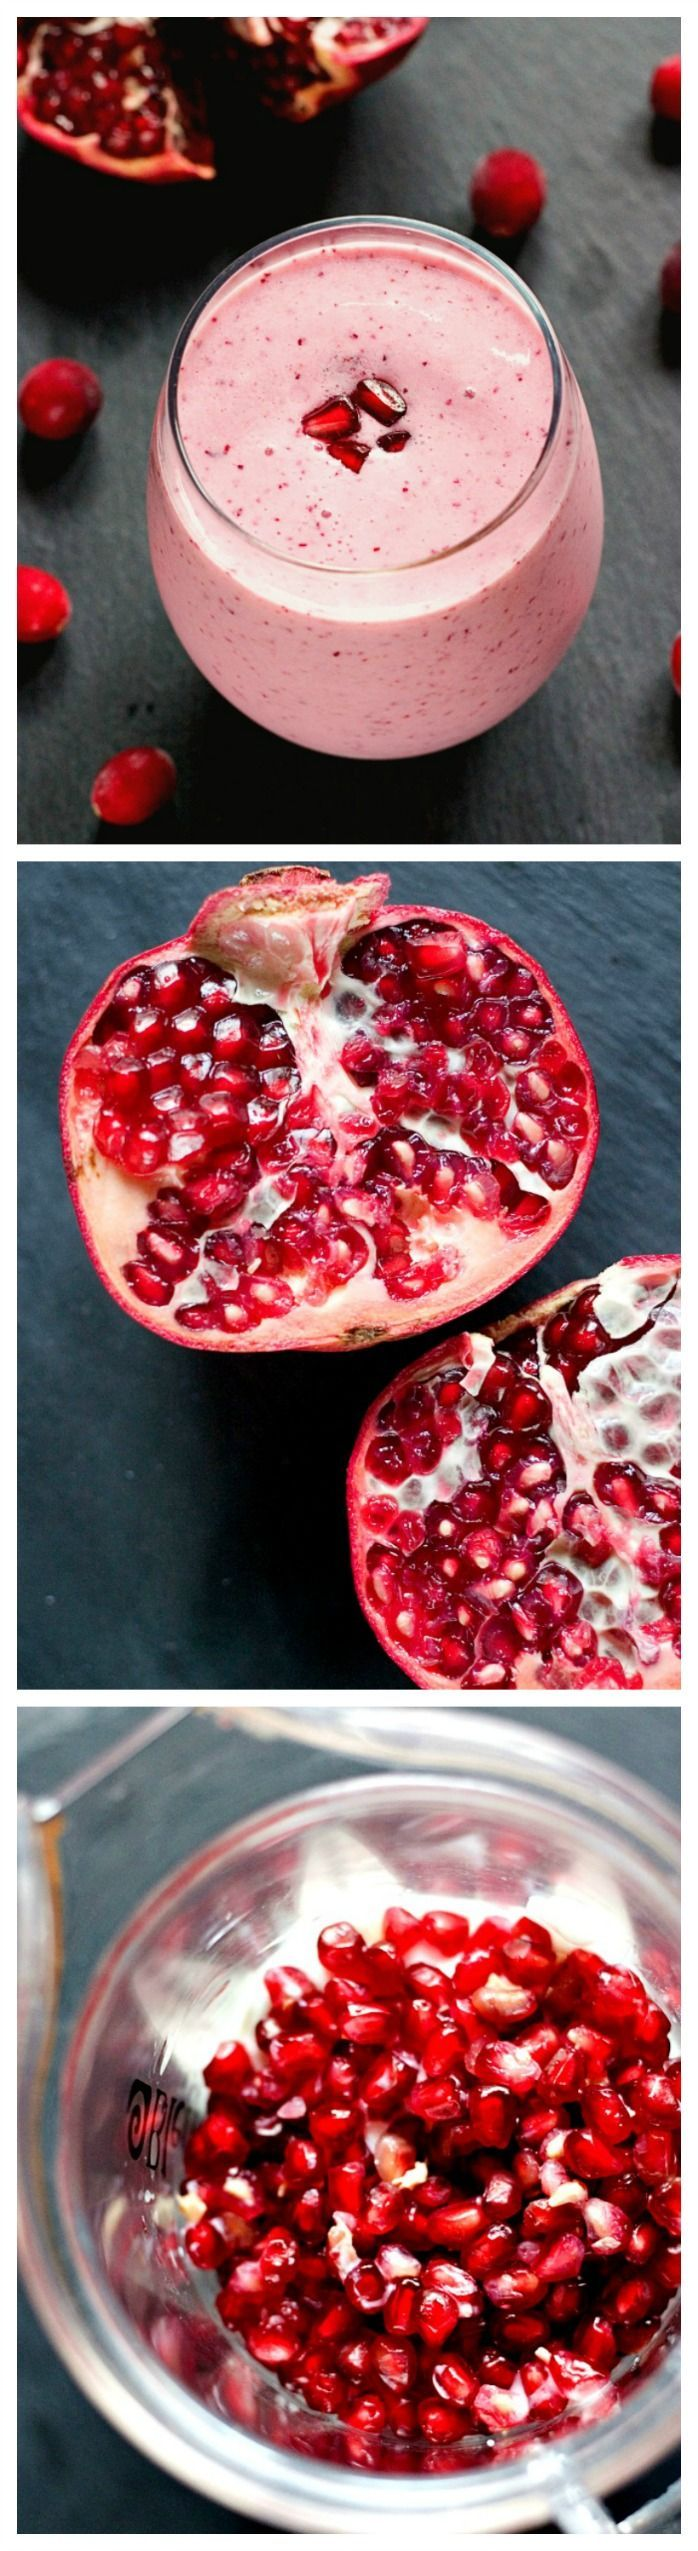 This cranberry pomegranate smoothie by crunchycreamysweet looks good…